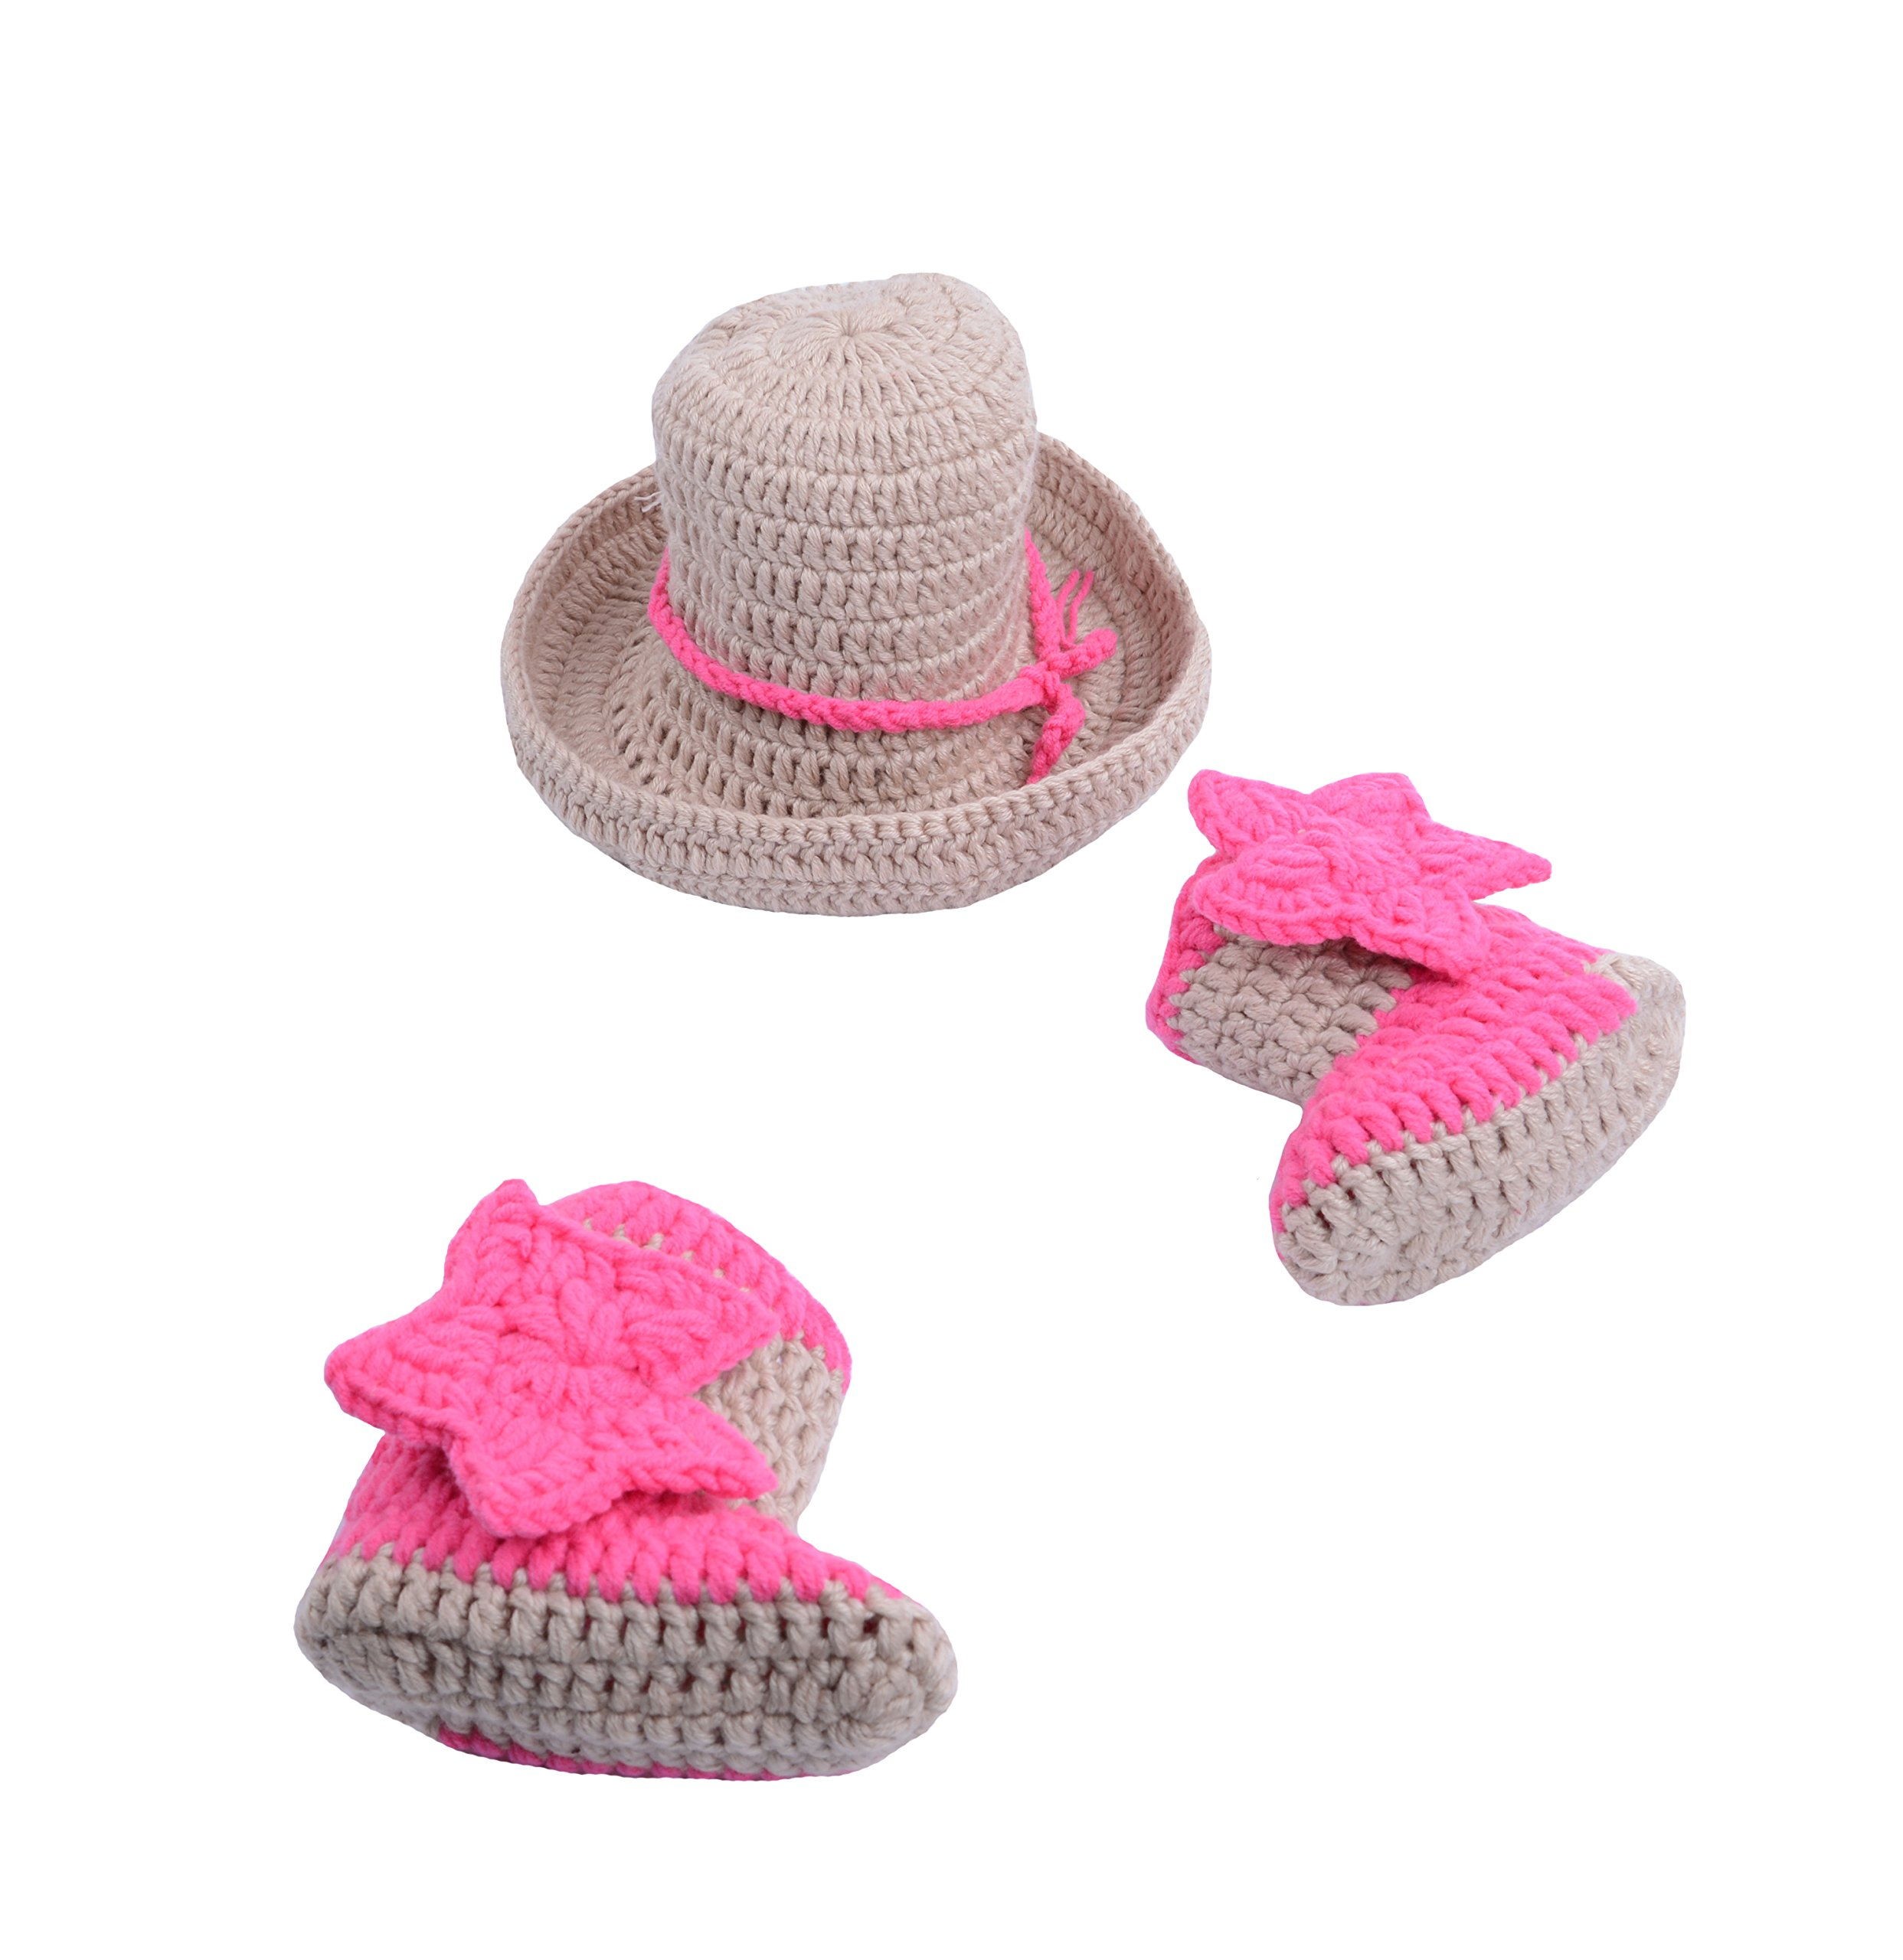 CX-Queen Newborn Baby Photography Prop Crochet Cowboy Hat Boot Diaper Set Costume (Style 13)